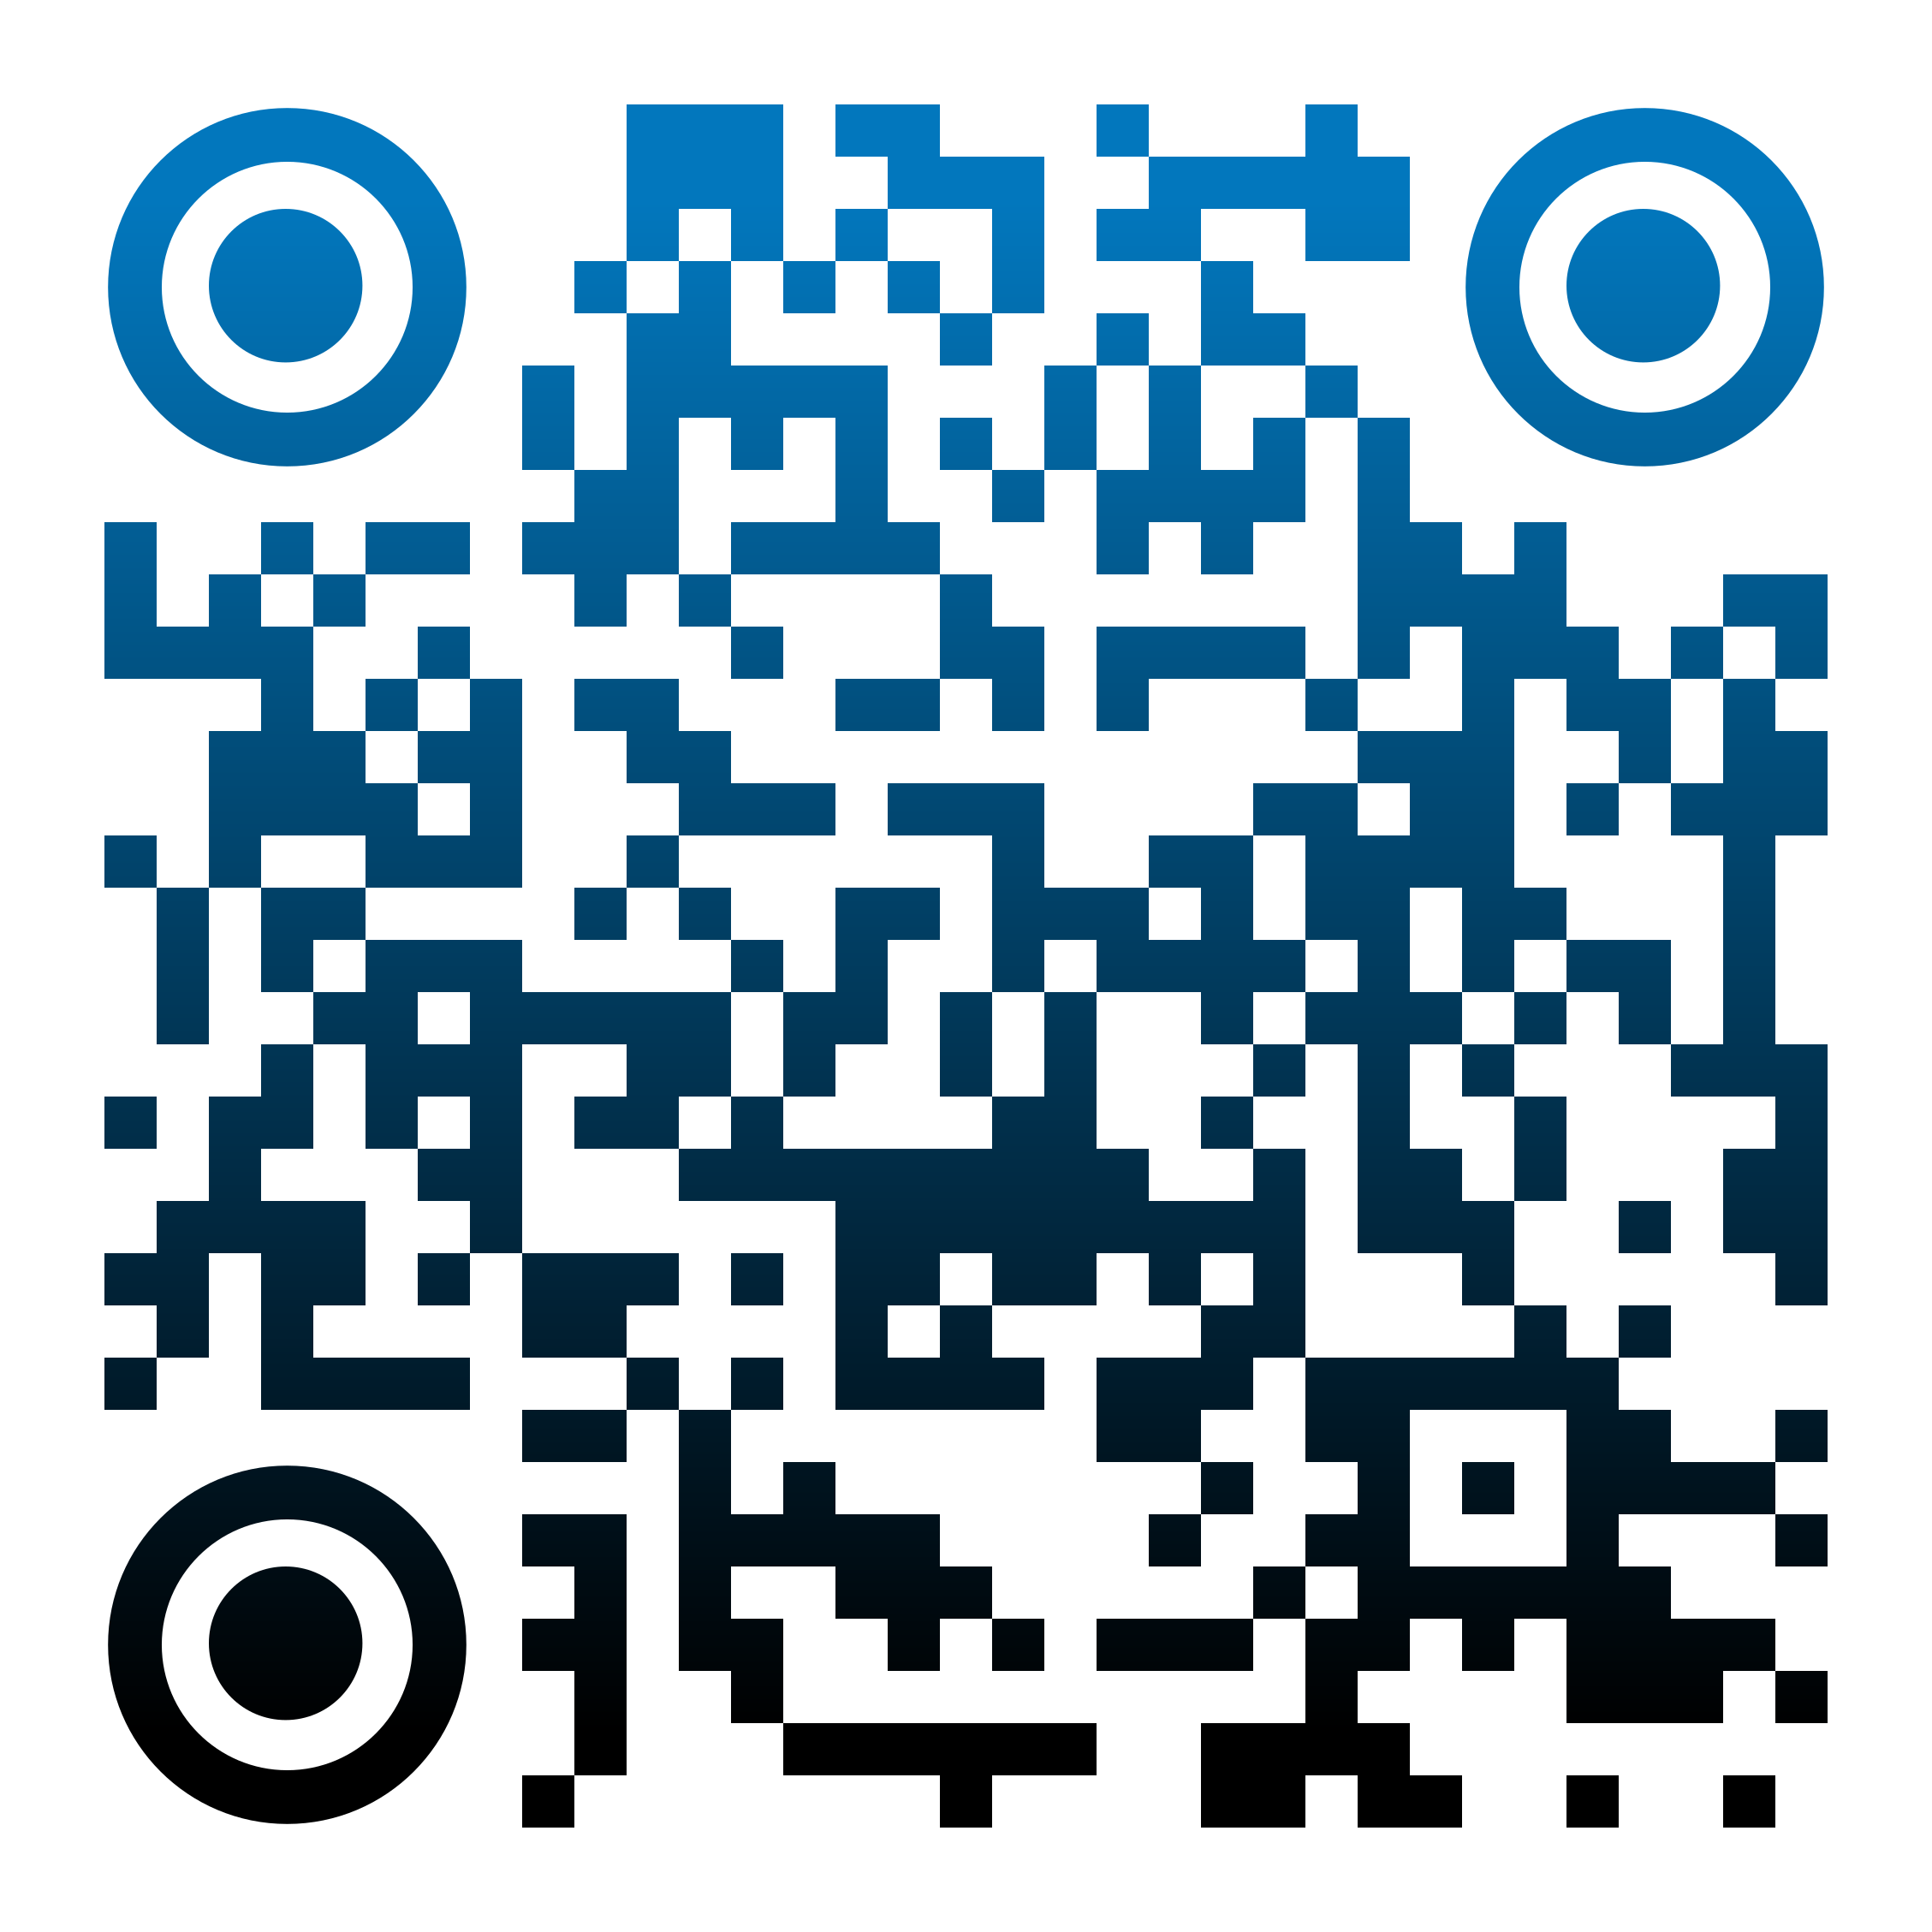 <a href ='http://go.biznet.id/terminationformprepaid' target='_blank'>Termination Form for Biznet Metronet & Biznet Home service</a><br/><small><b>*click QR Code to enlarged</b></small>